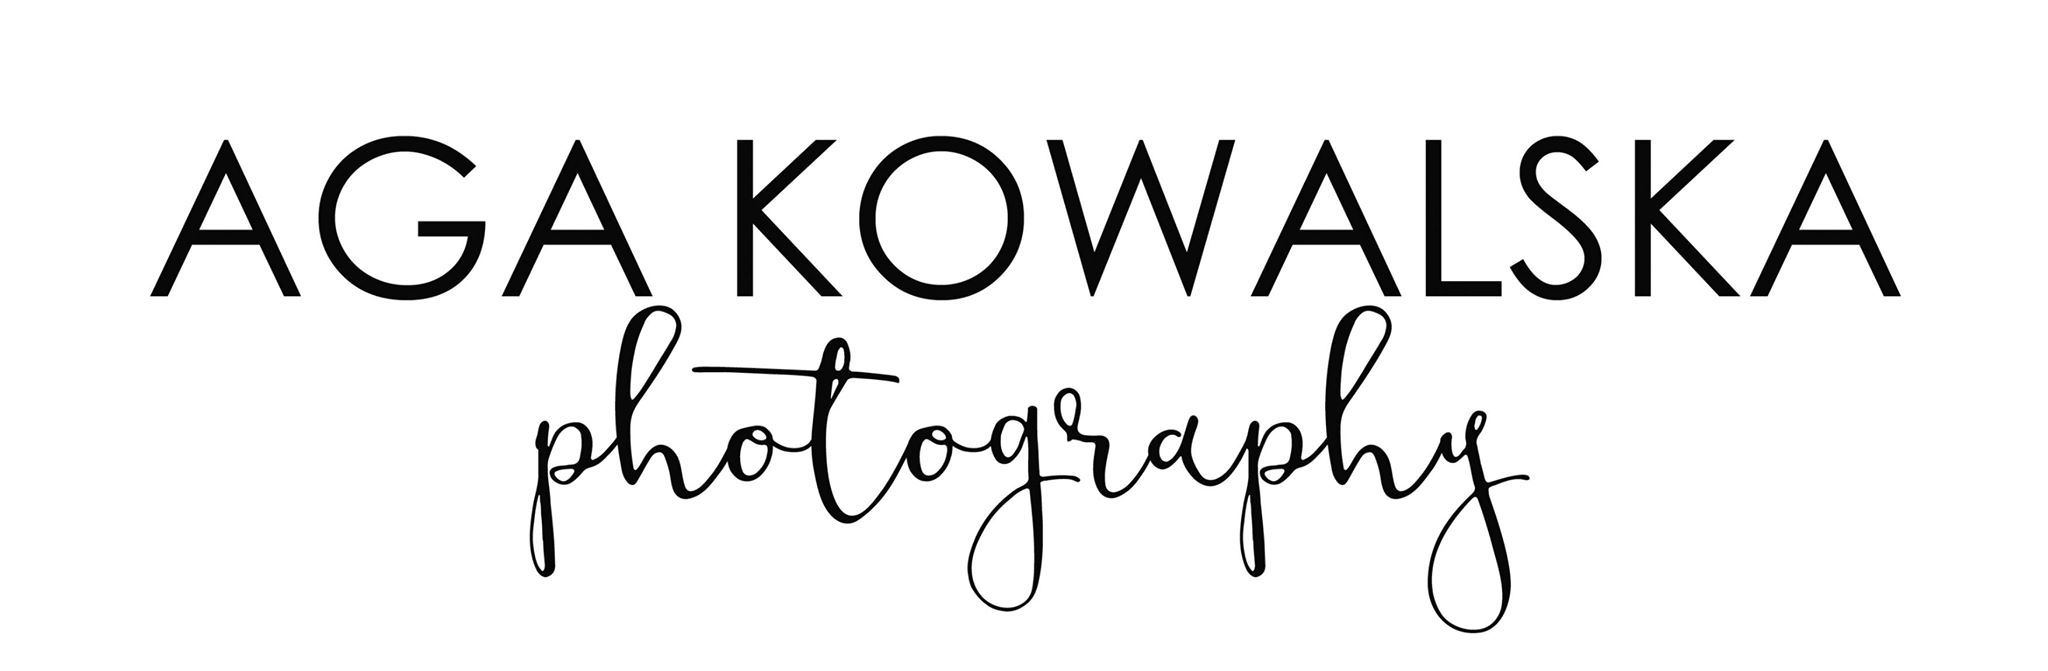 Aga Kowalska Photography Exeter, Devon, Specialist Family & Wedding Photographer